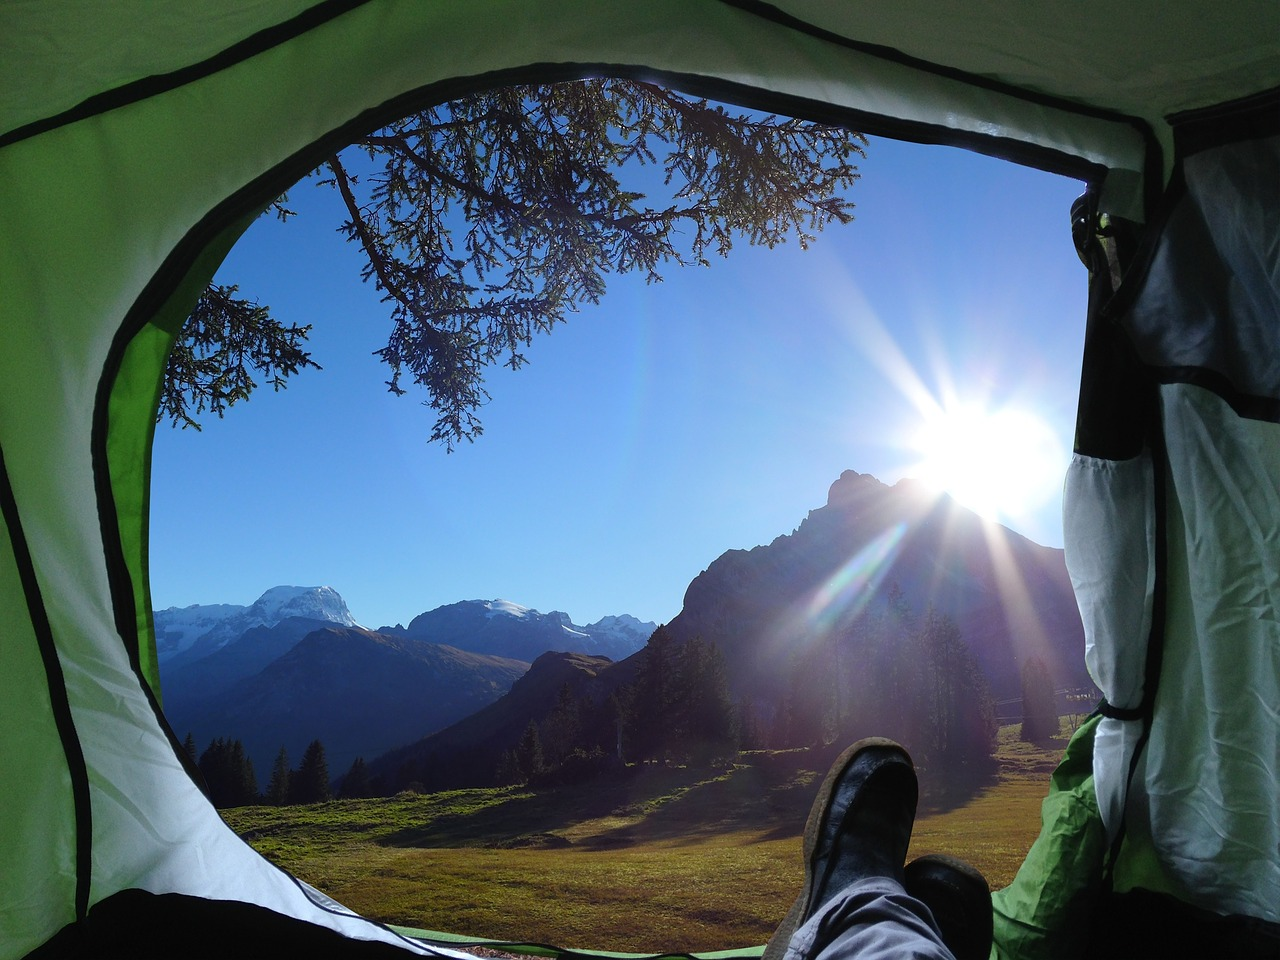 Fun things to do while camping and what to do if it rains